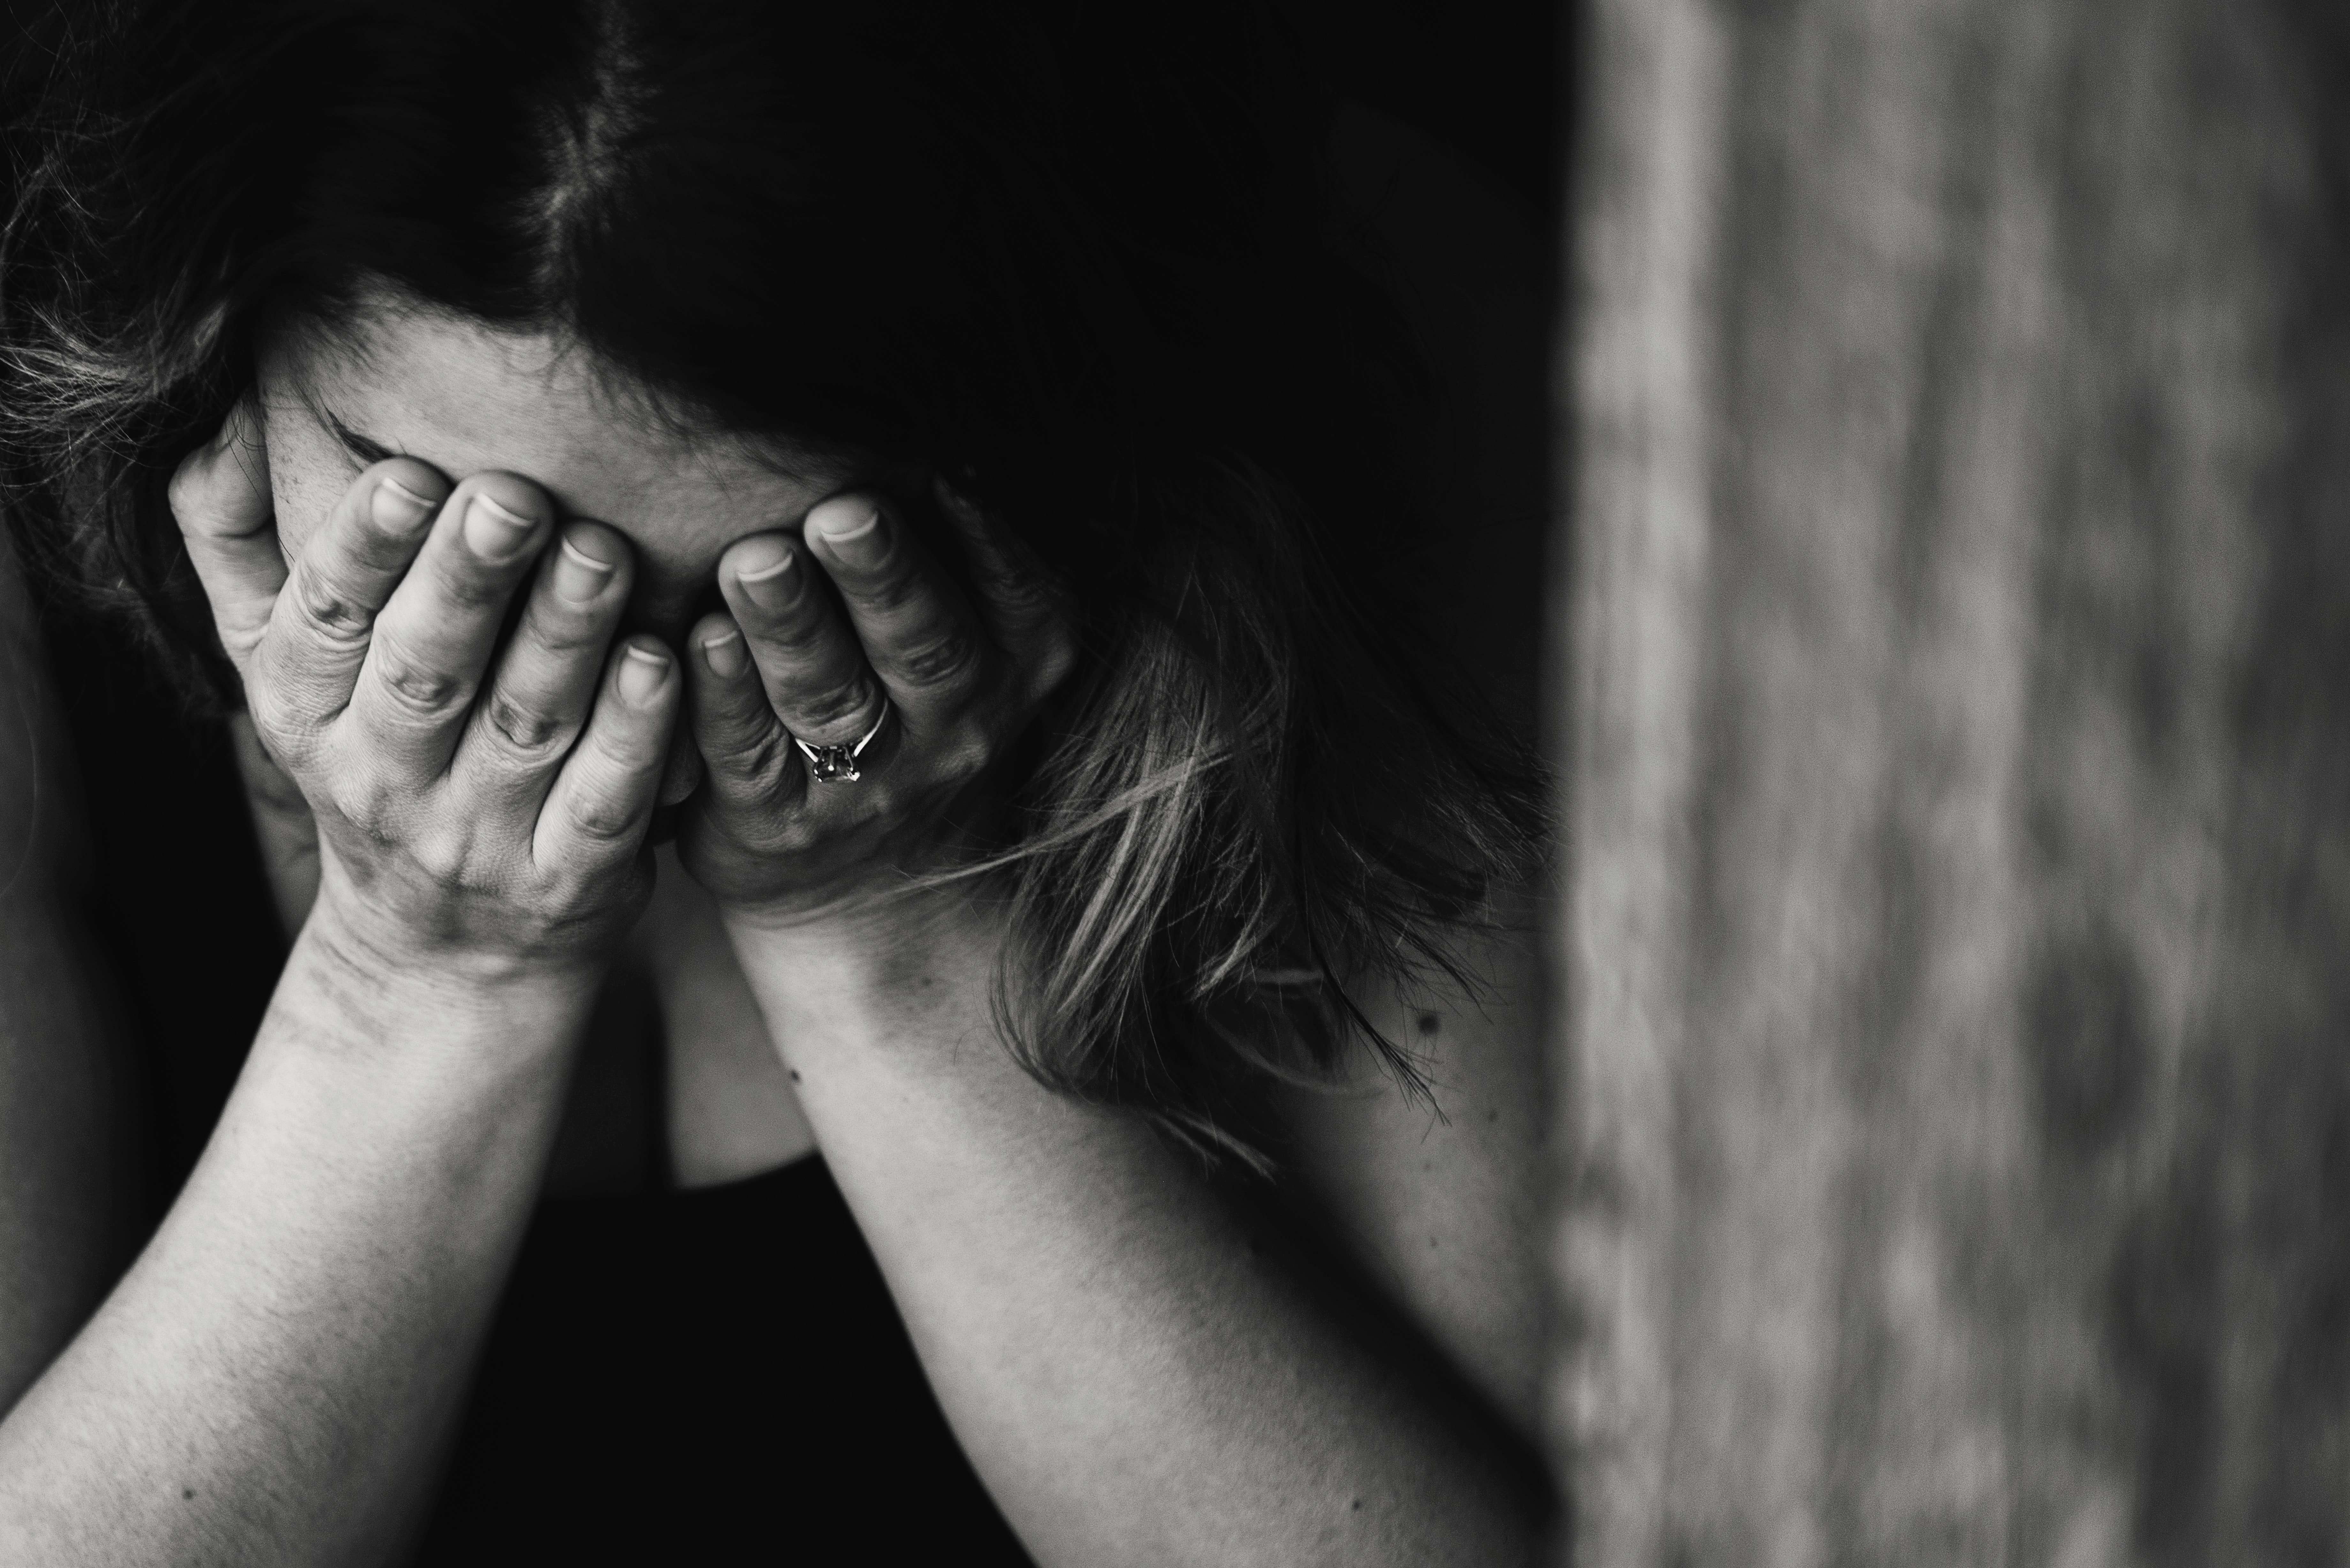 The woman looked distressed and sobbed to the ground   Photo: Pexels